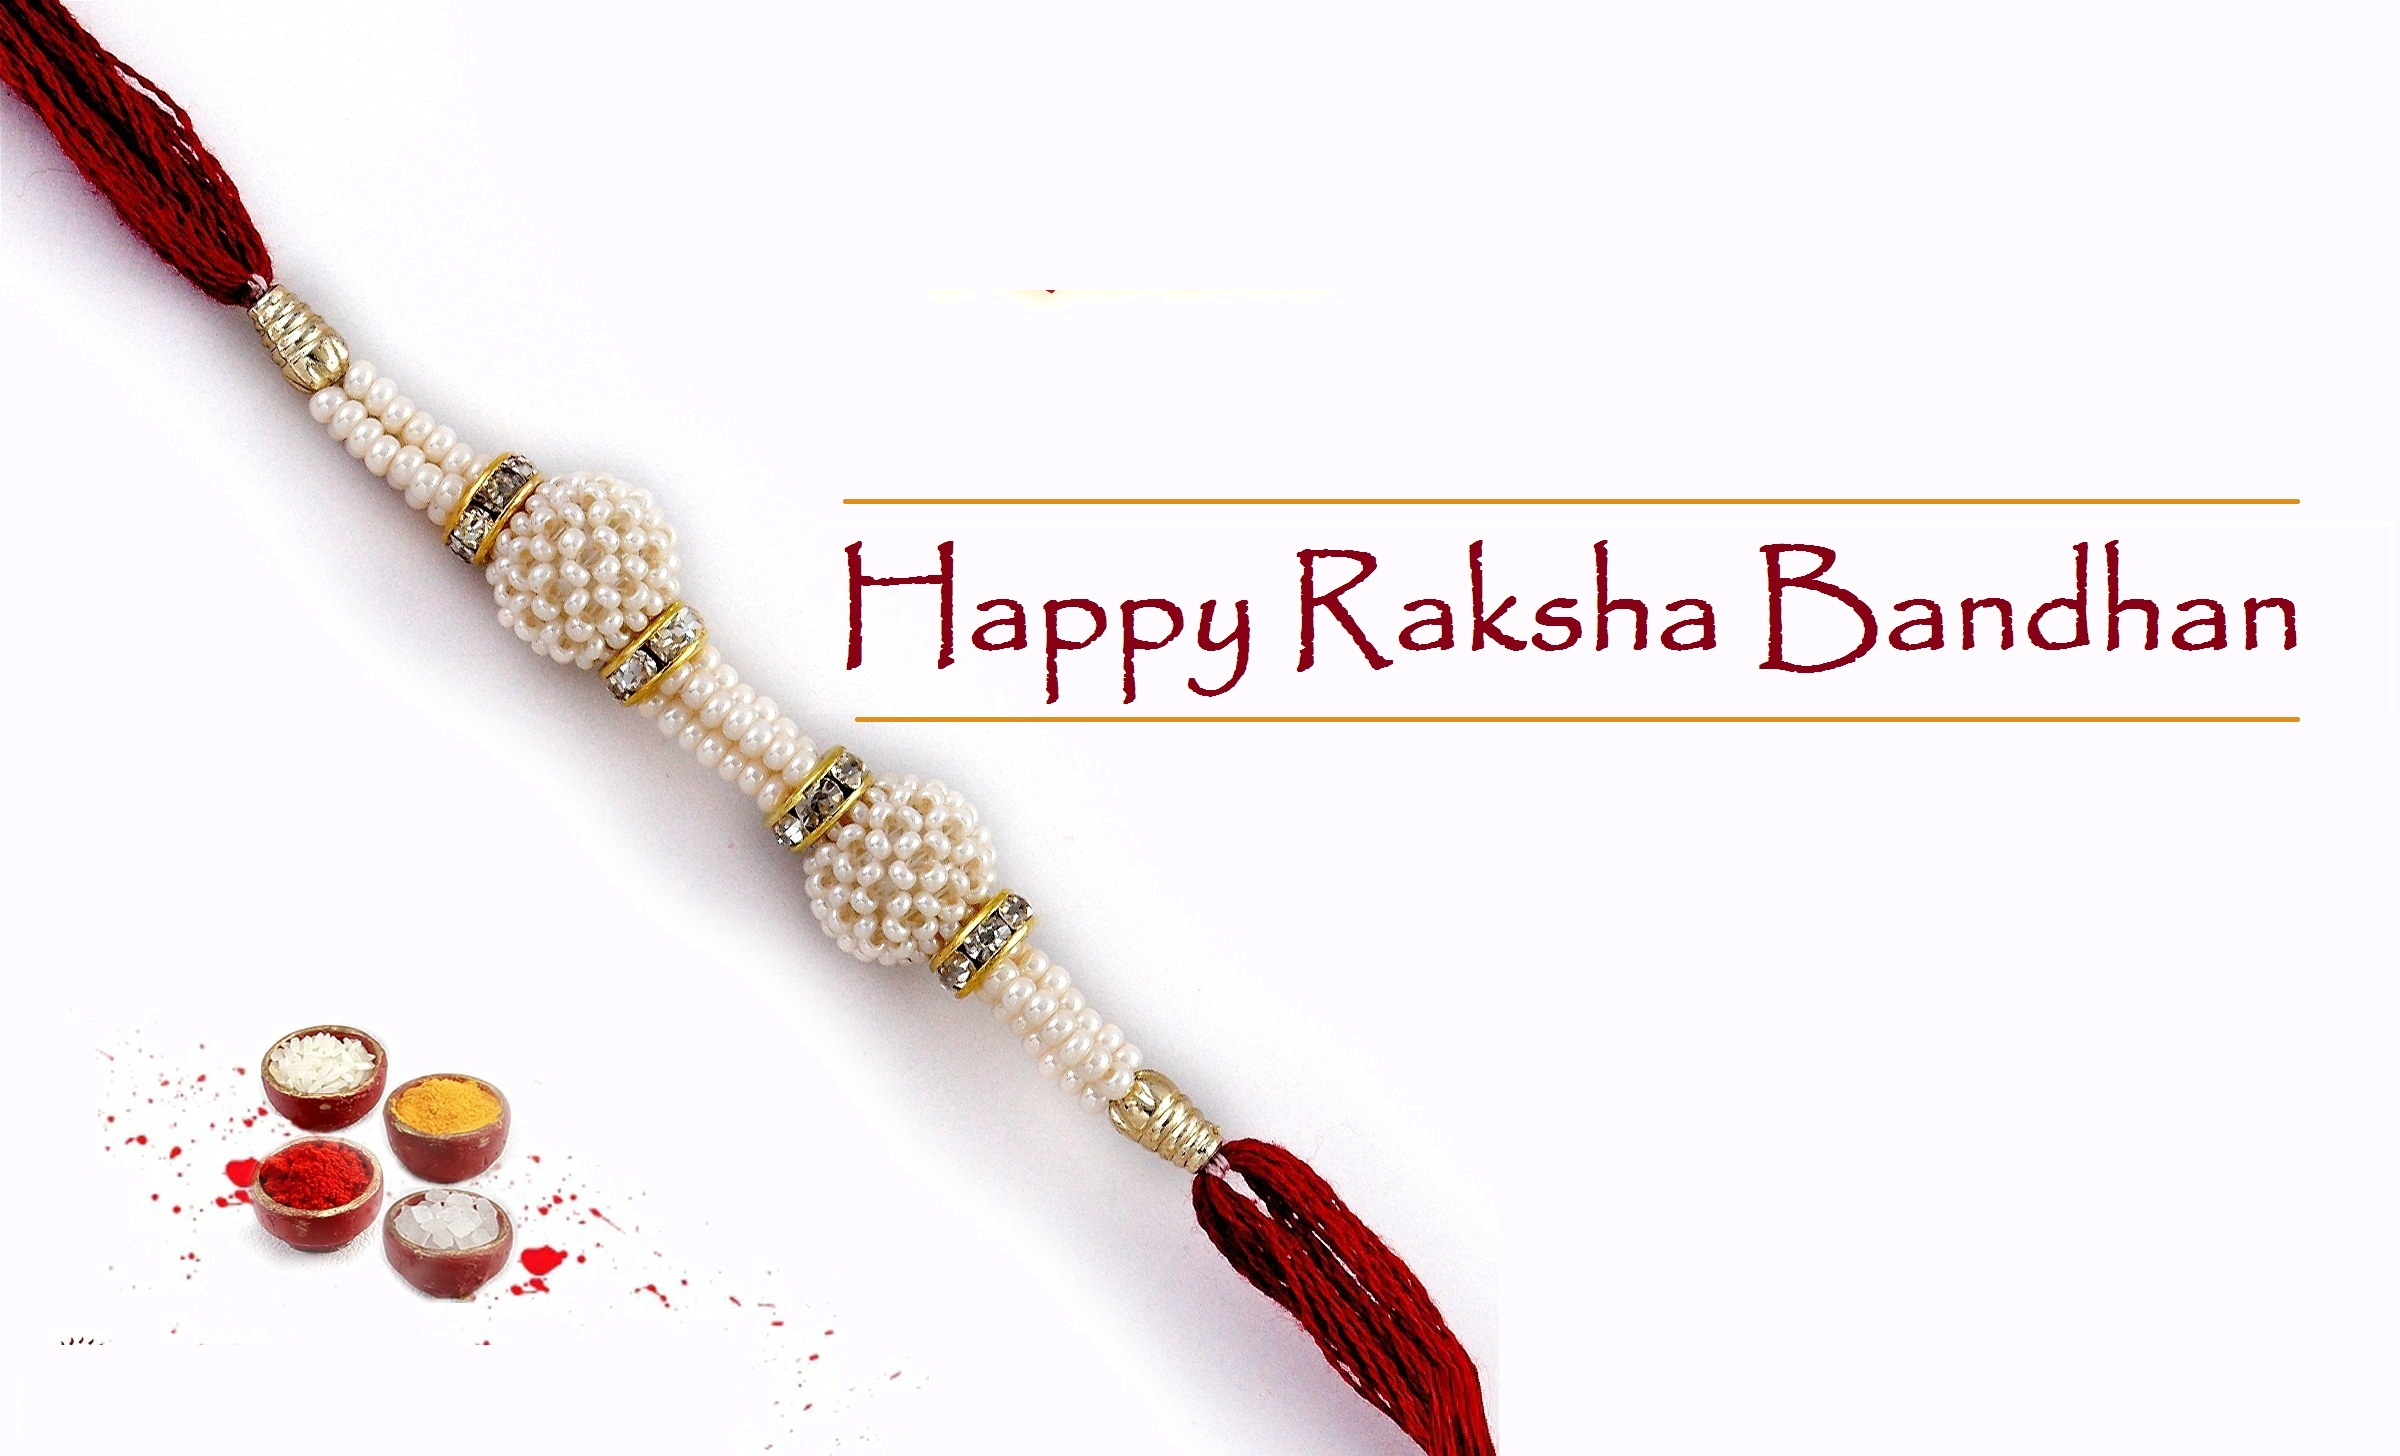 raksha bandhan band design hd wallpaper